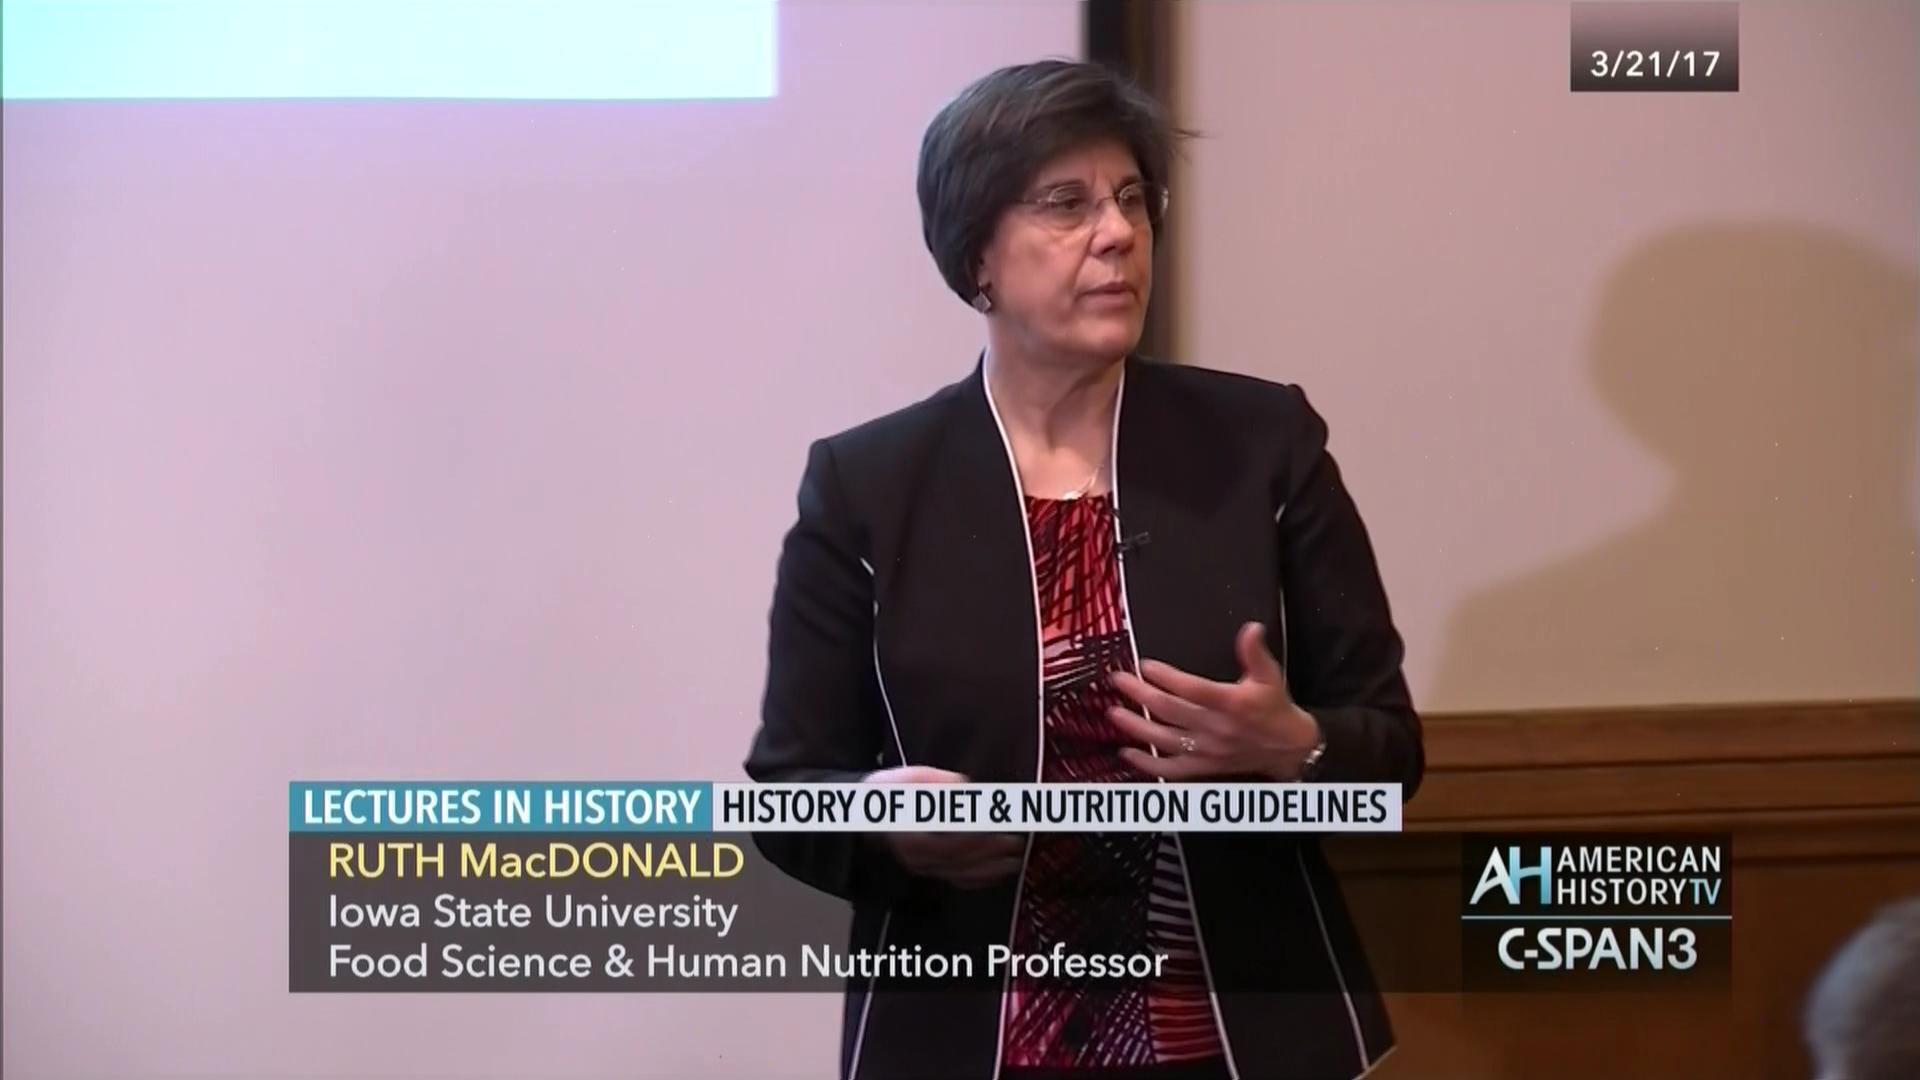 History Diet Nutrition Guidelines Mar 21 2017 Video C Span Org